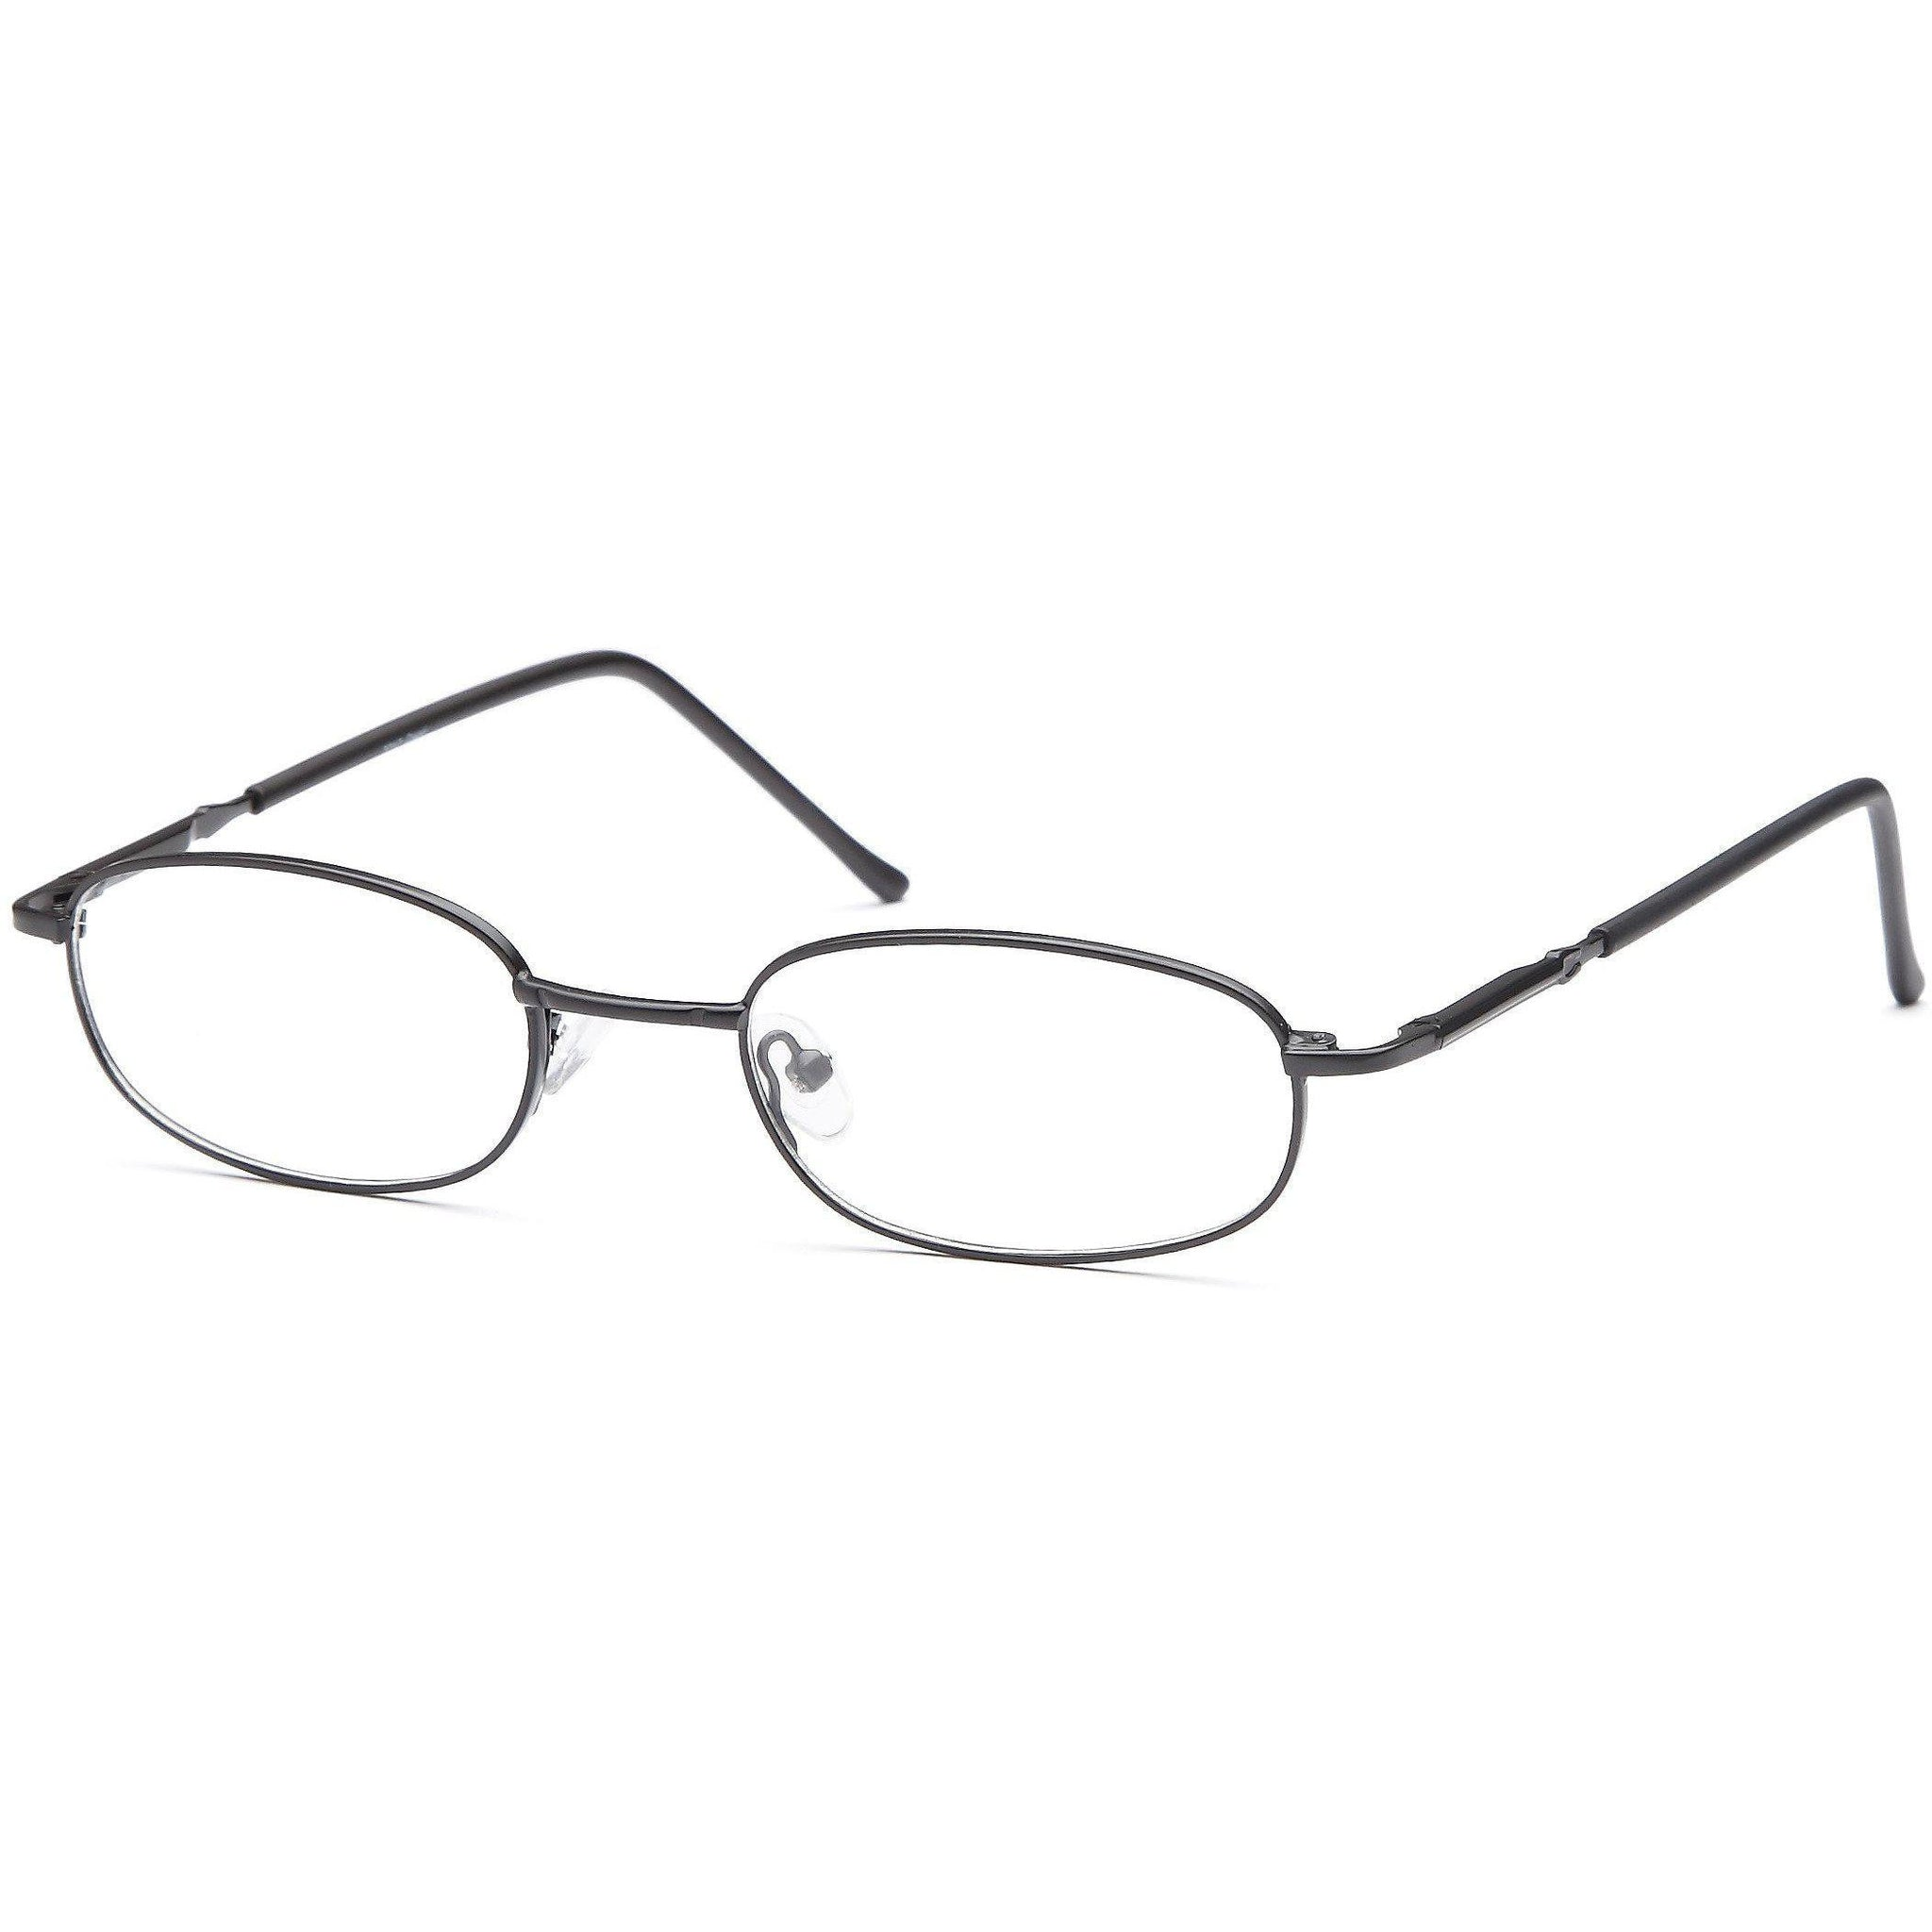 Appletree Prescription Glasses 7712 Eyeglasses Frame